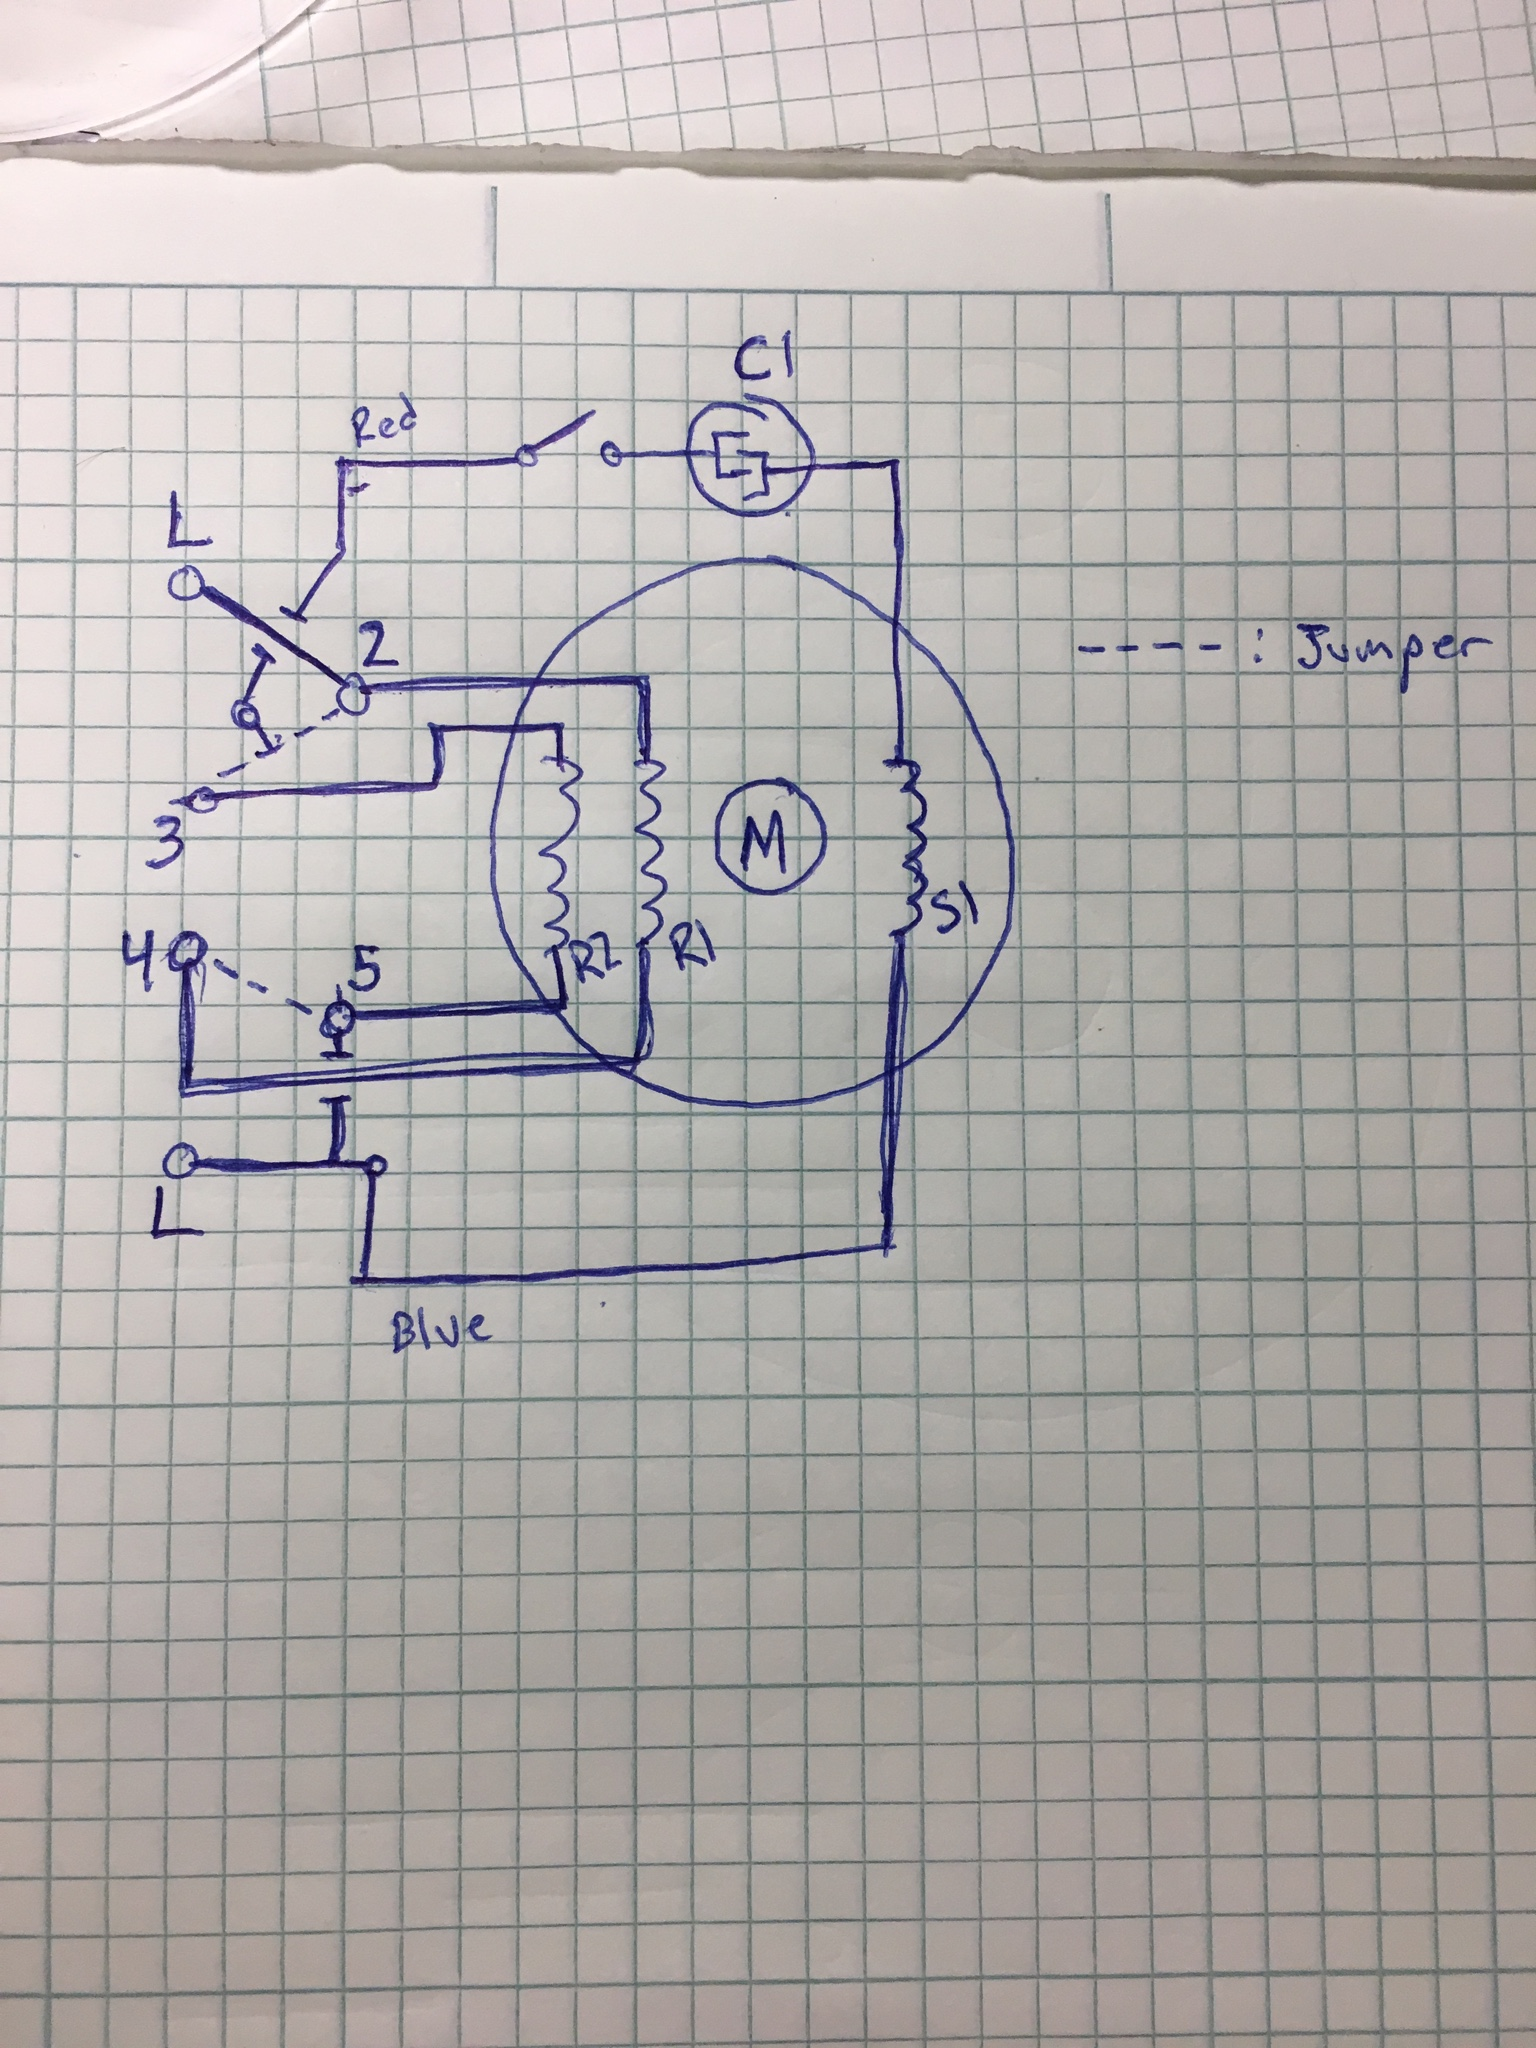 Ge Motor Wiring Diagram : motor, wiring, diagram, Practical, Machinist, Largest, Manufacturing, Technology, Forum